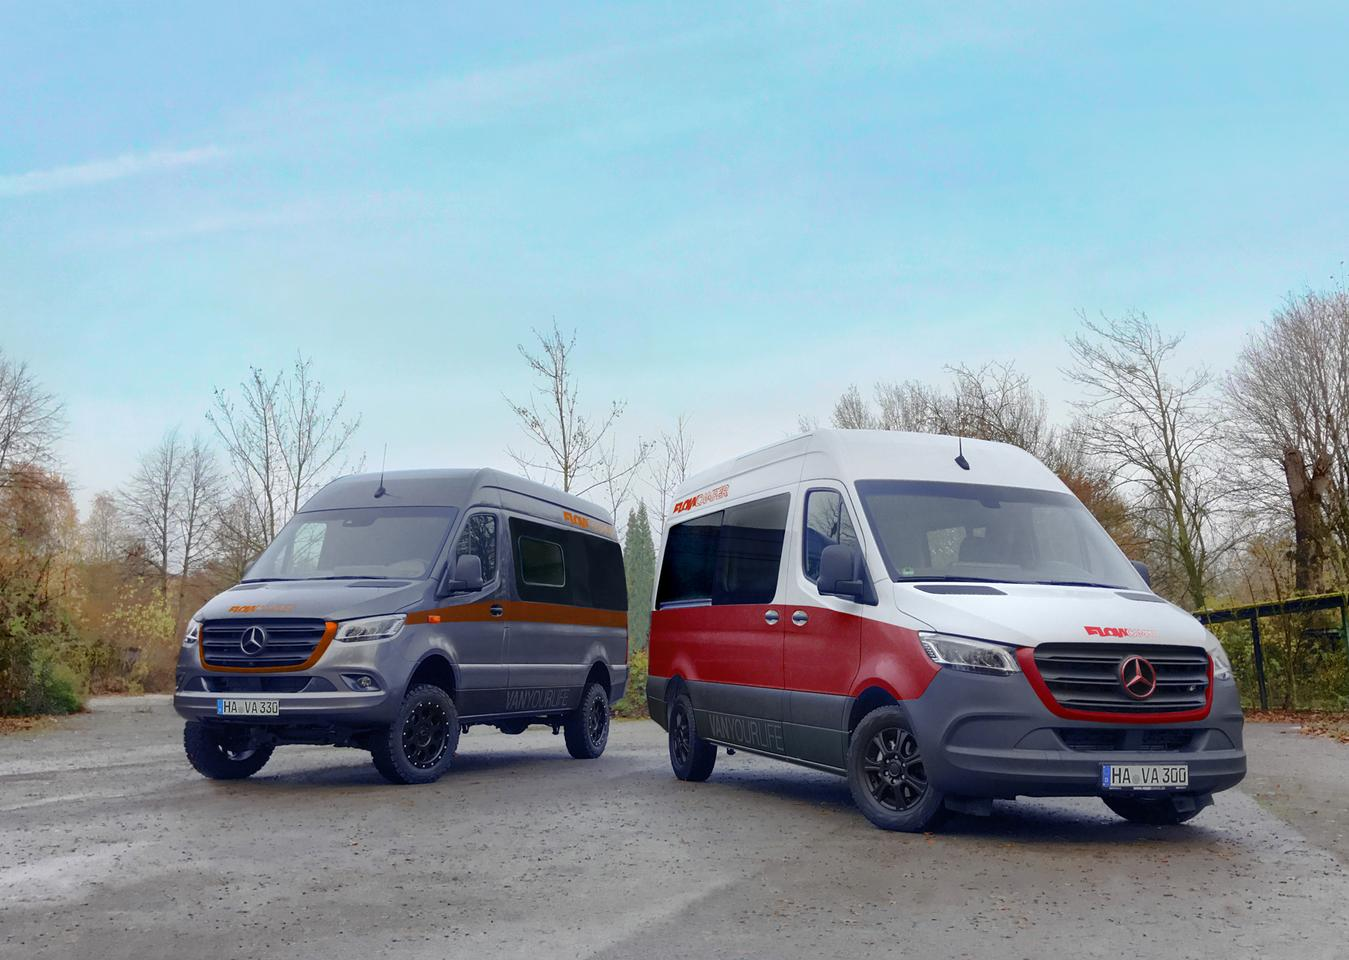 There are a number of different Flowcamper Max models, including both 592- and 690-cm versions